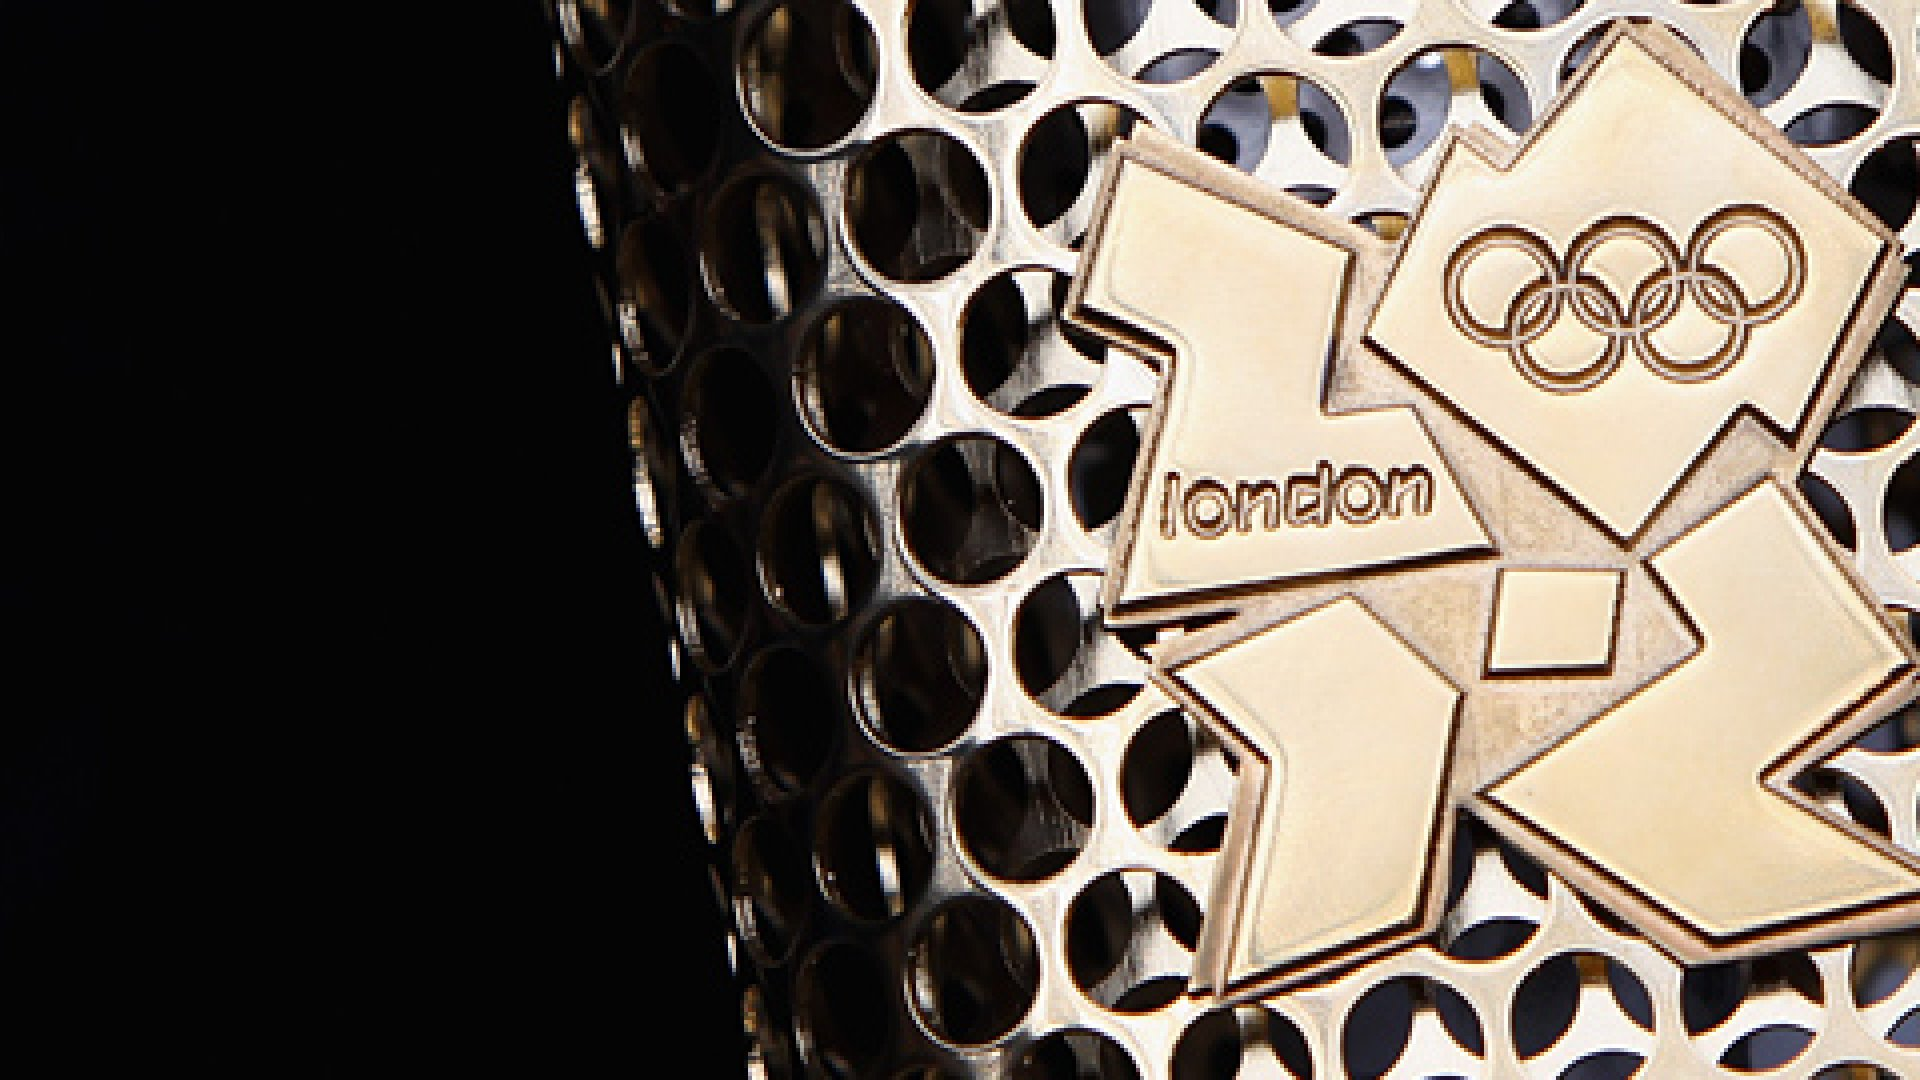 Barber Osgerby's design for the 2012 Olympic torch features 8,000 holes, symbolizing the 8,000 torchbearers.